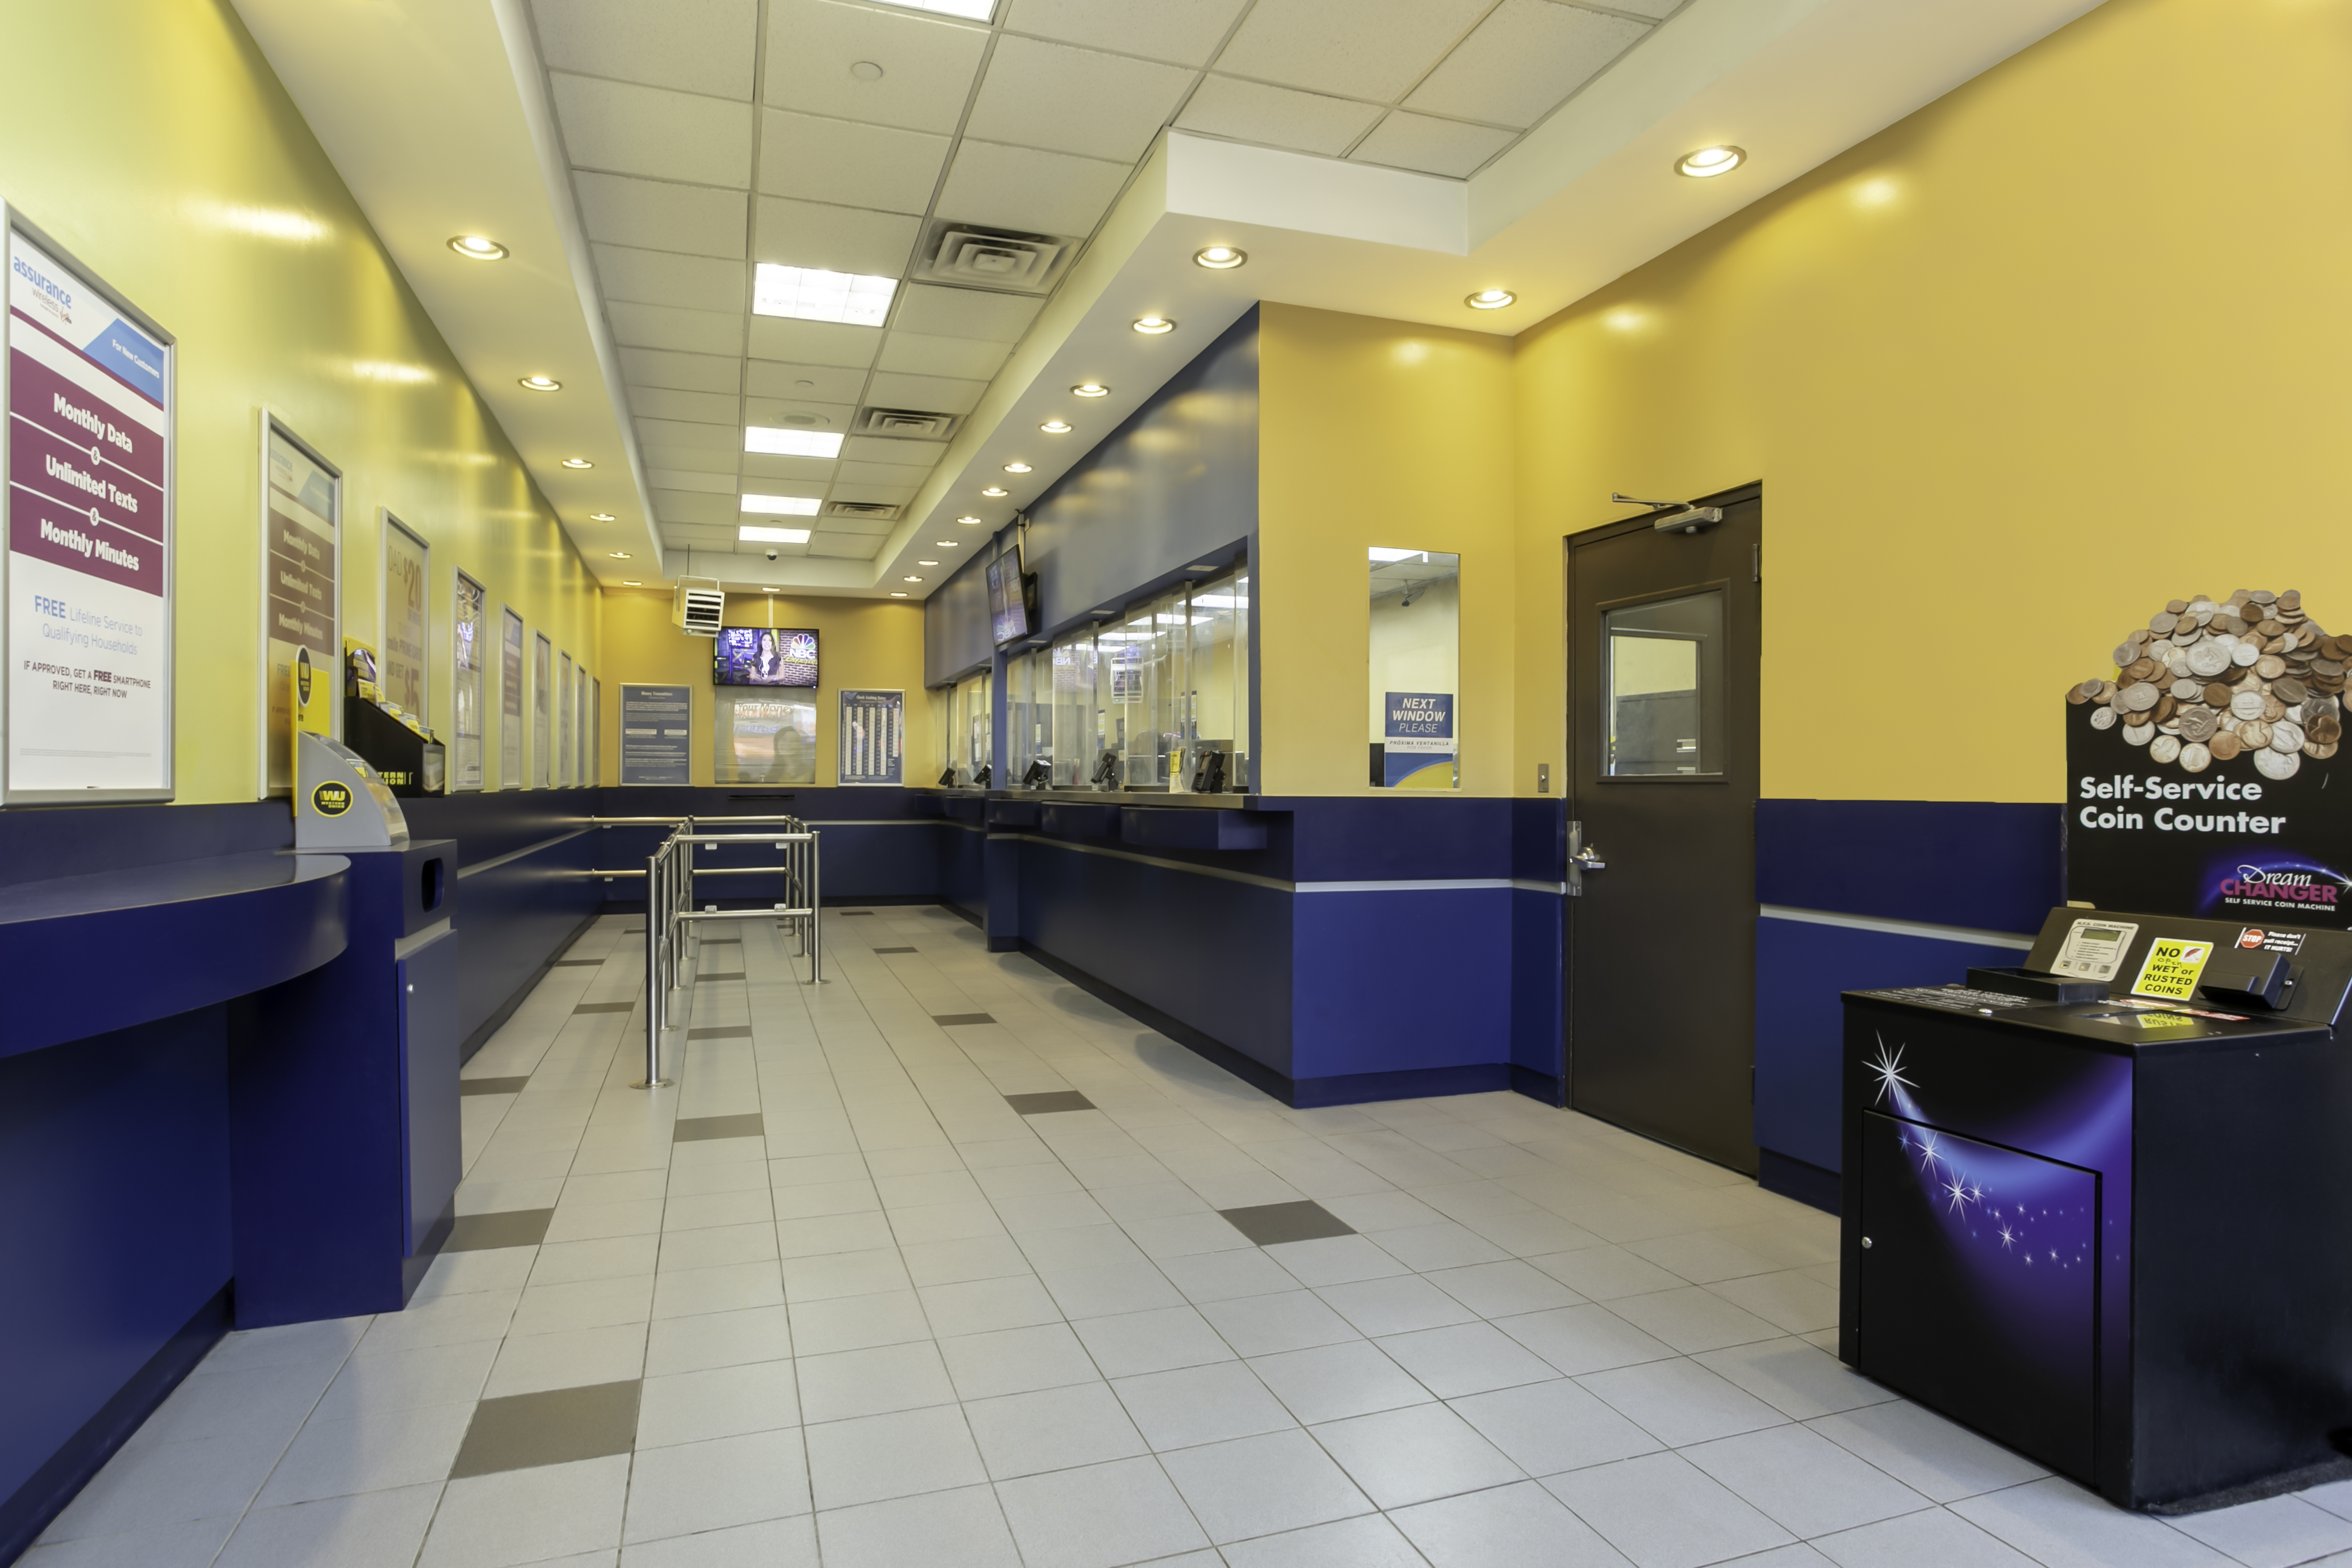 Customer waiting area and teller windows inside PAYOMATIC store located at 159 East 170th St Bronx, NY 10452